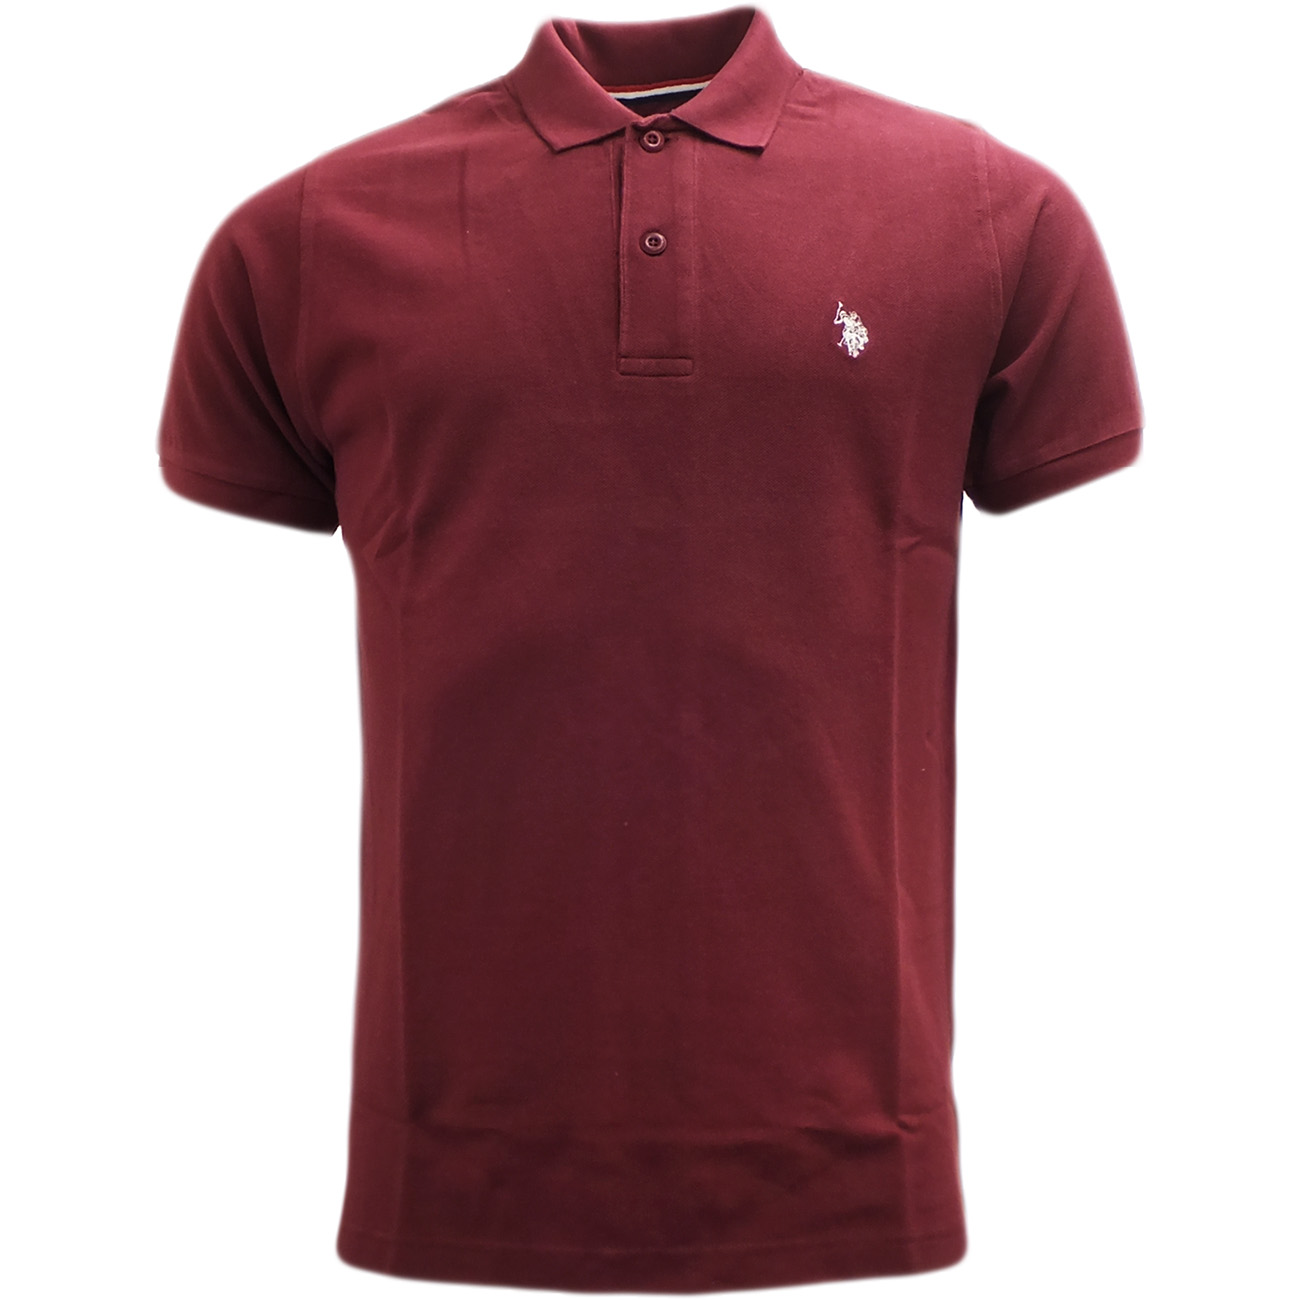 Mens polo shirt u s polo assn plain polos horse logo for Polo shirts with logos